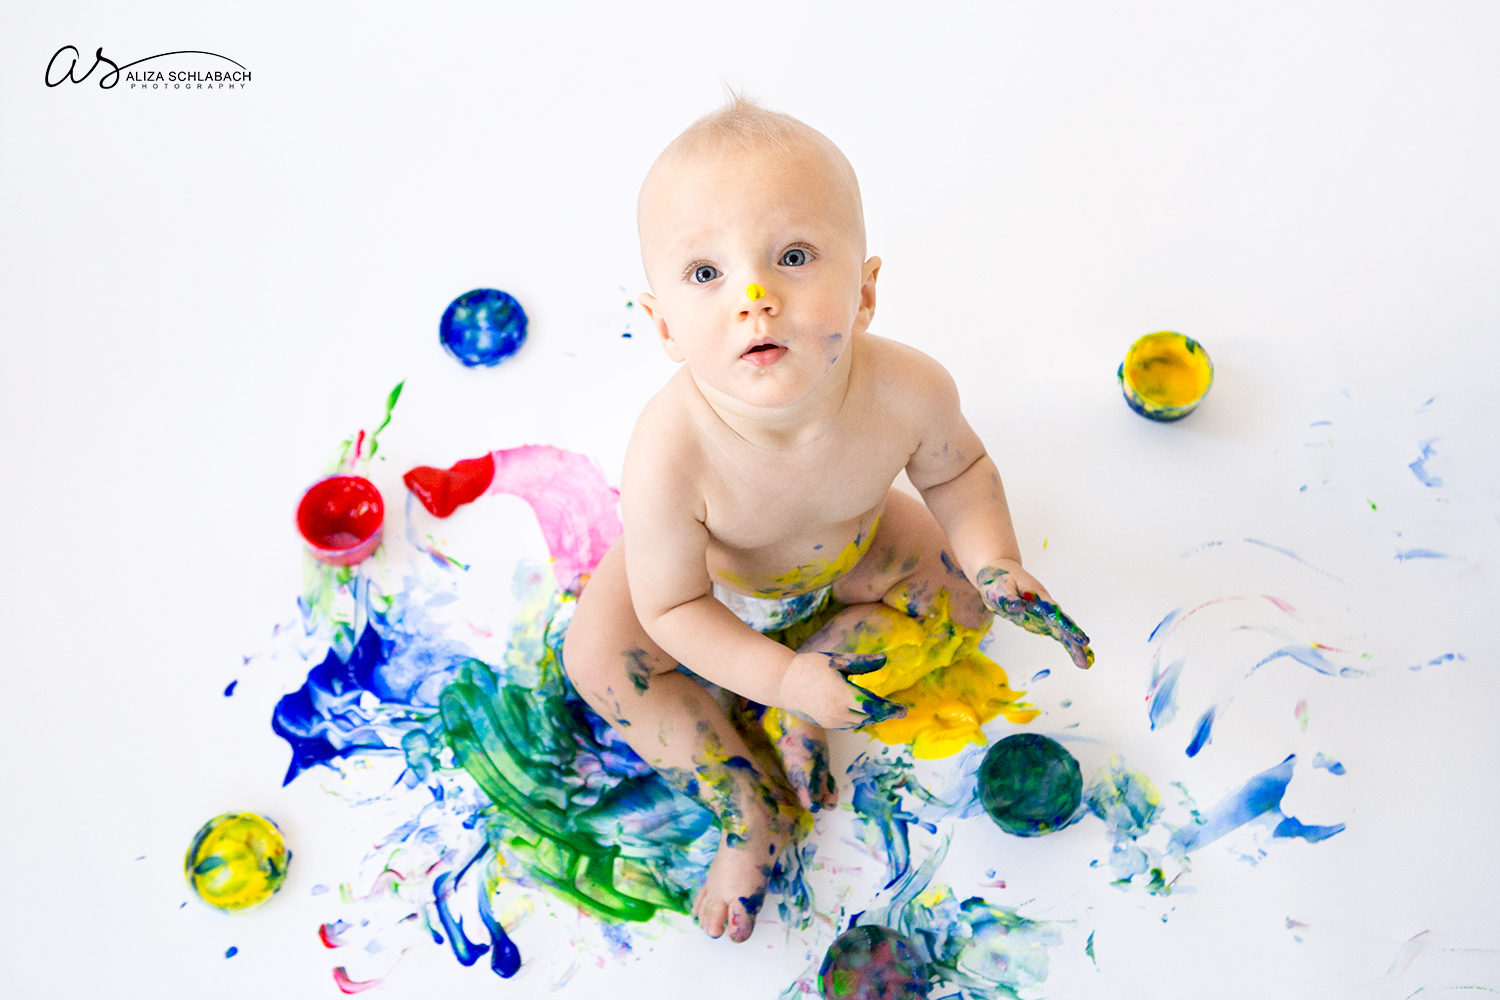 Portrait of a 1 year old baby fingerpainting on white seamless